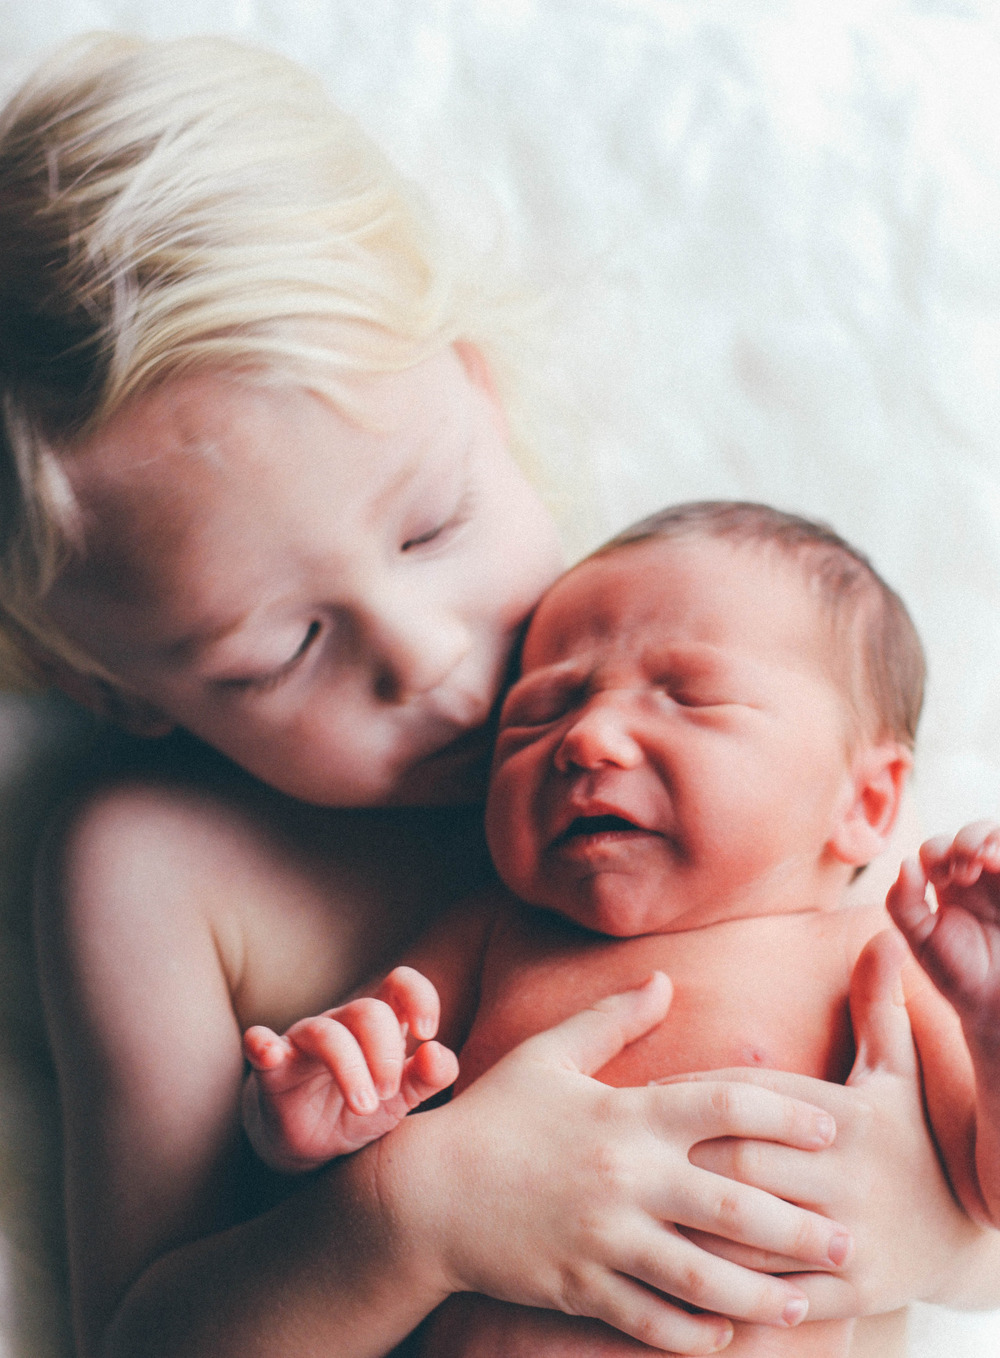 brothers, siblings, sibling kisses, newborn and toddler photography, newborn photos, newborn and toddler photography, s